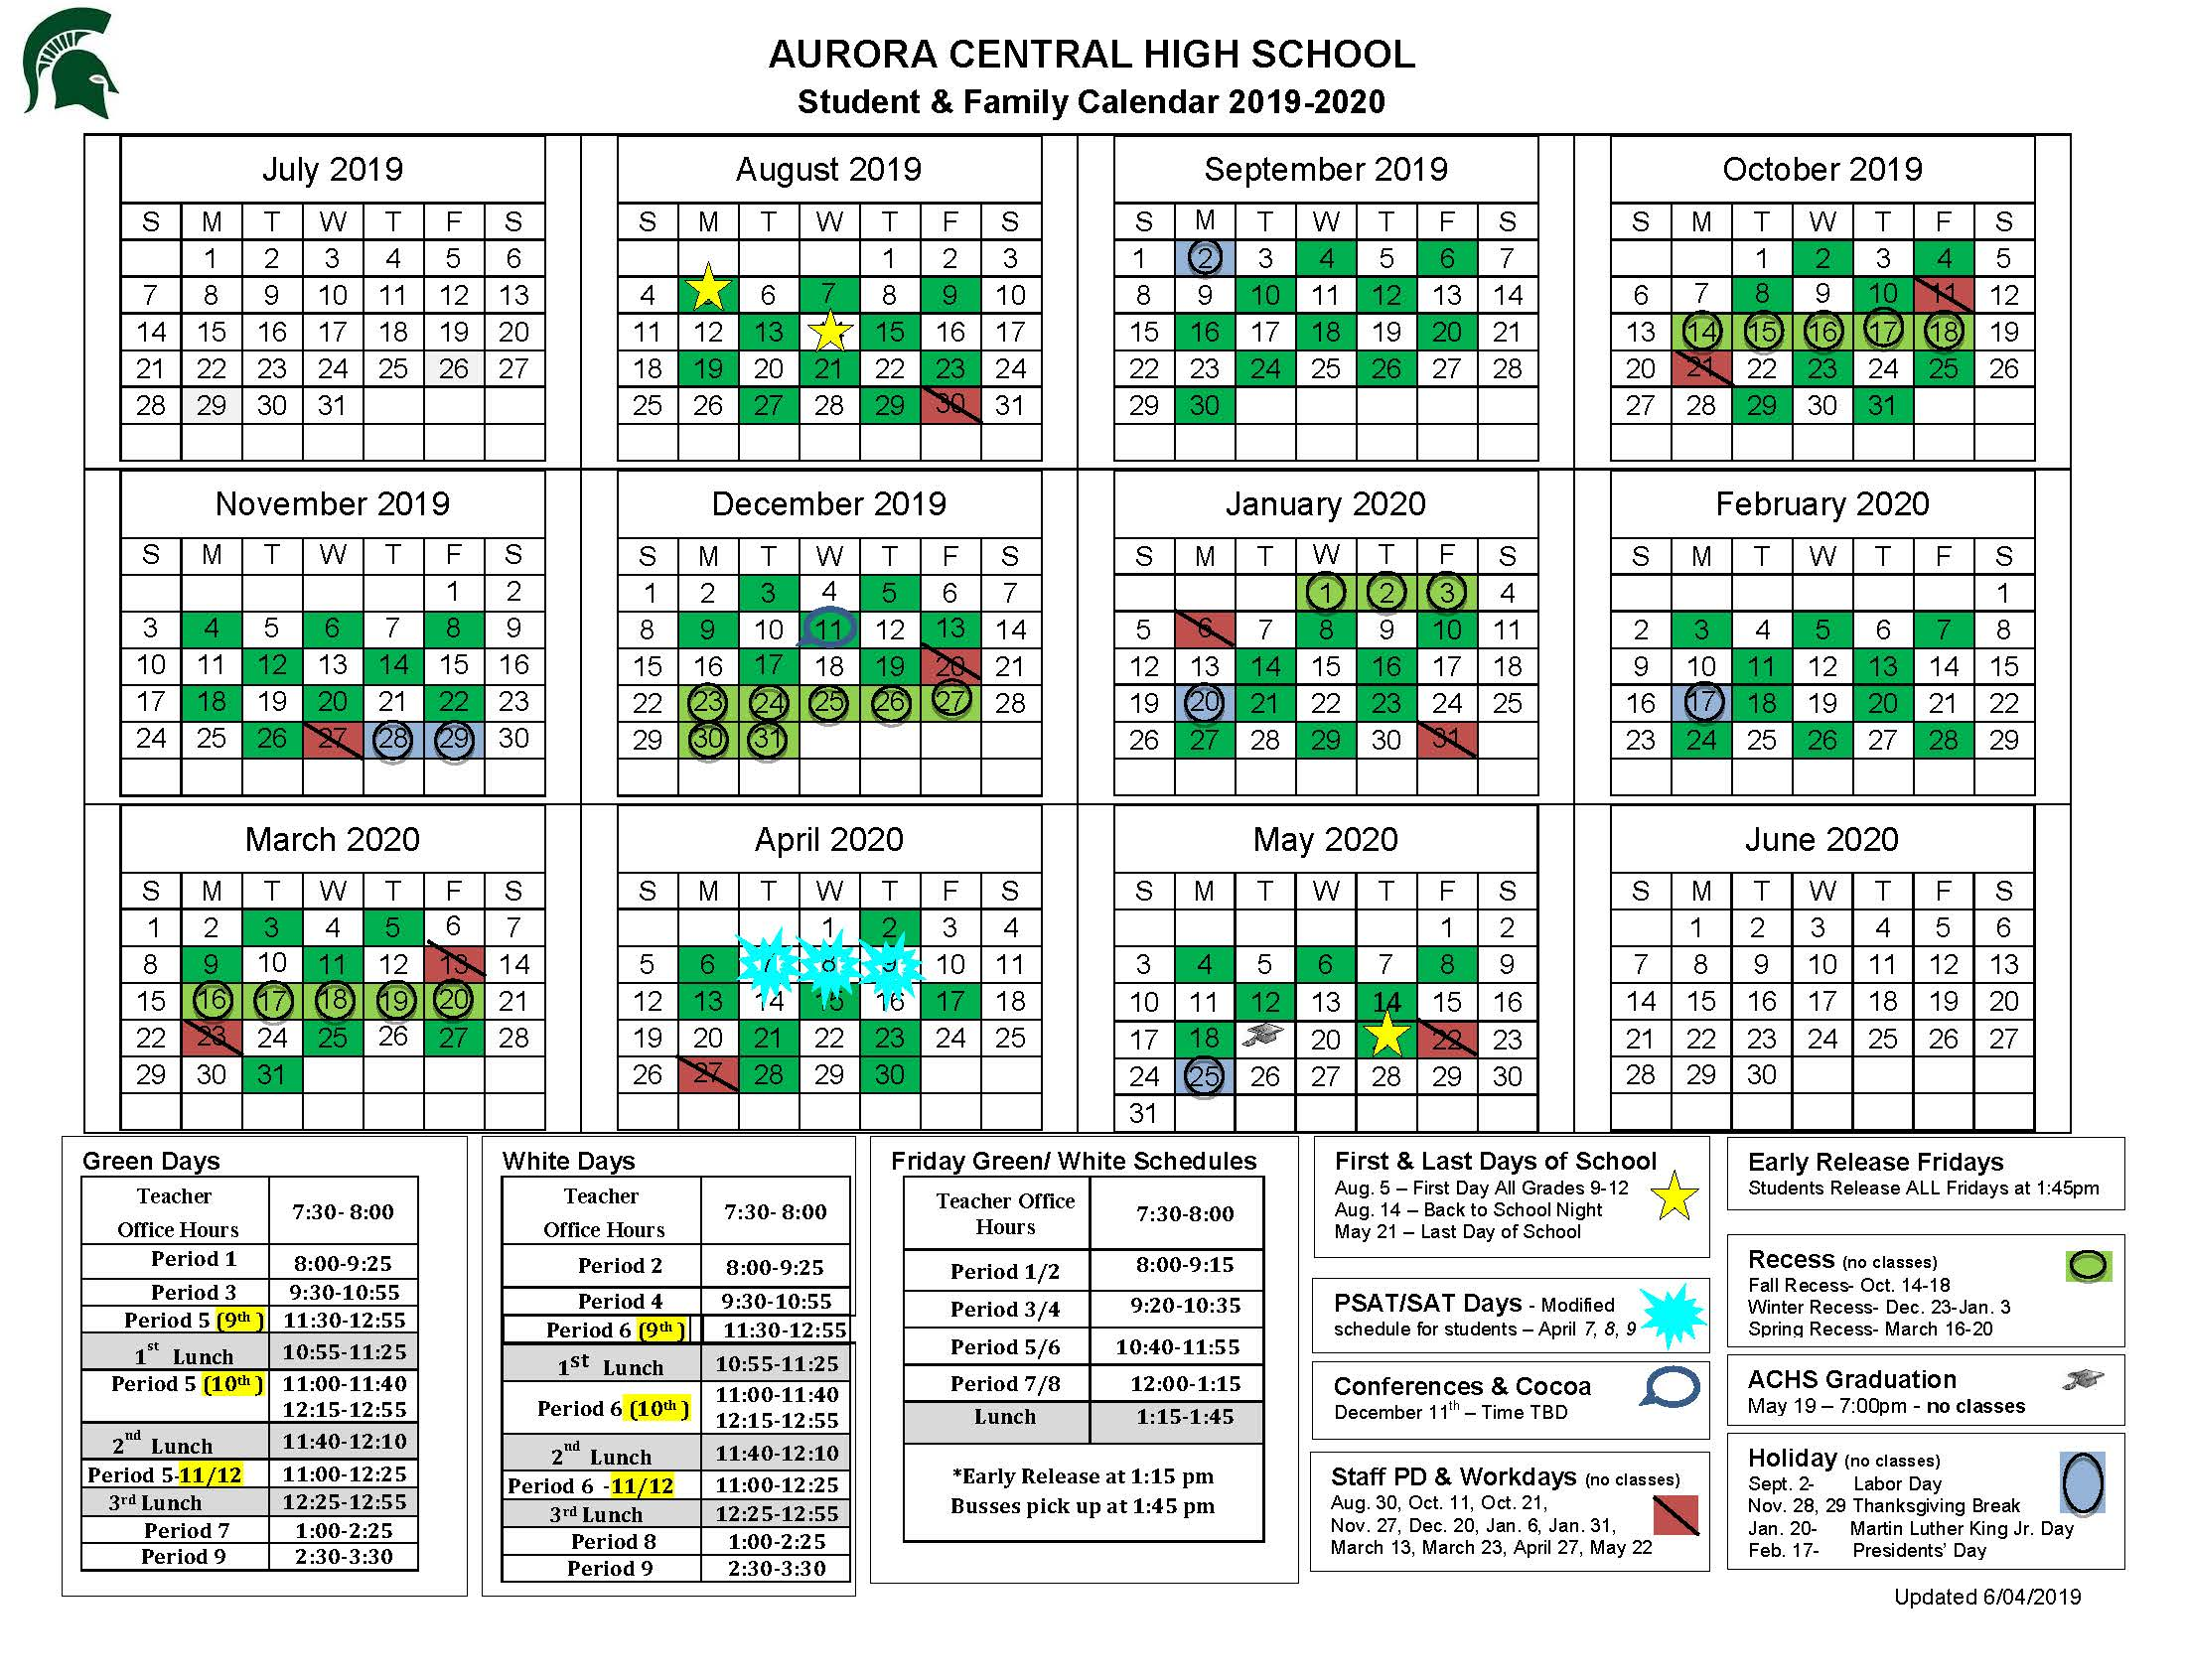 Aurora Central High School Calendar | Aurora Central High School